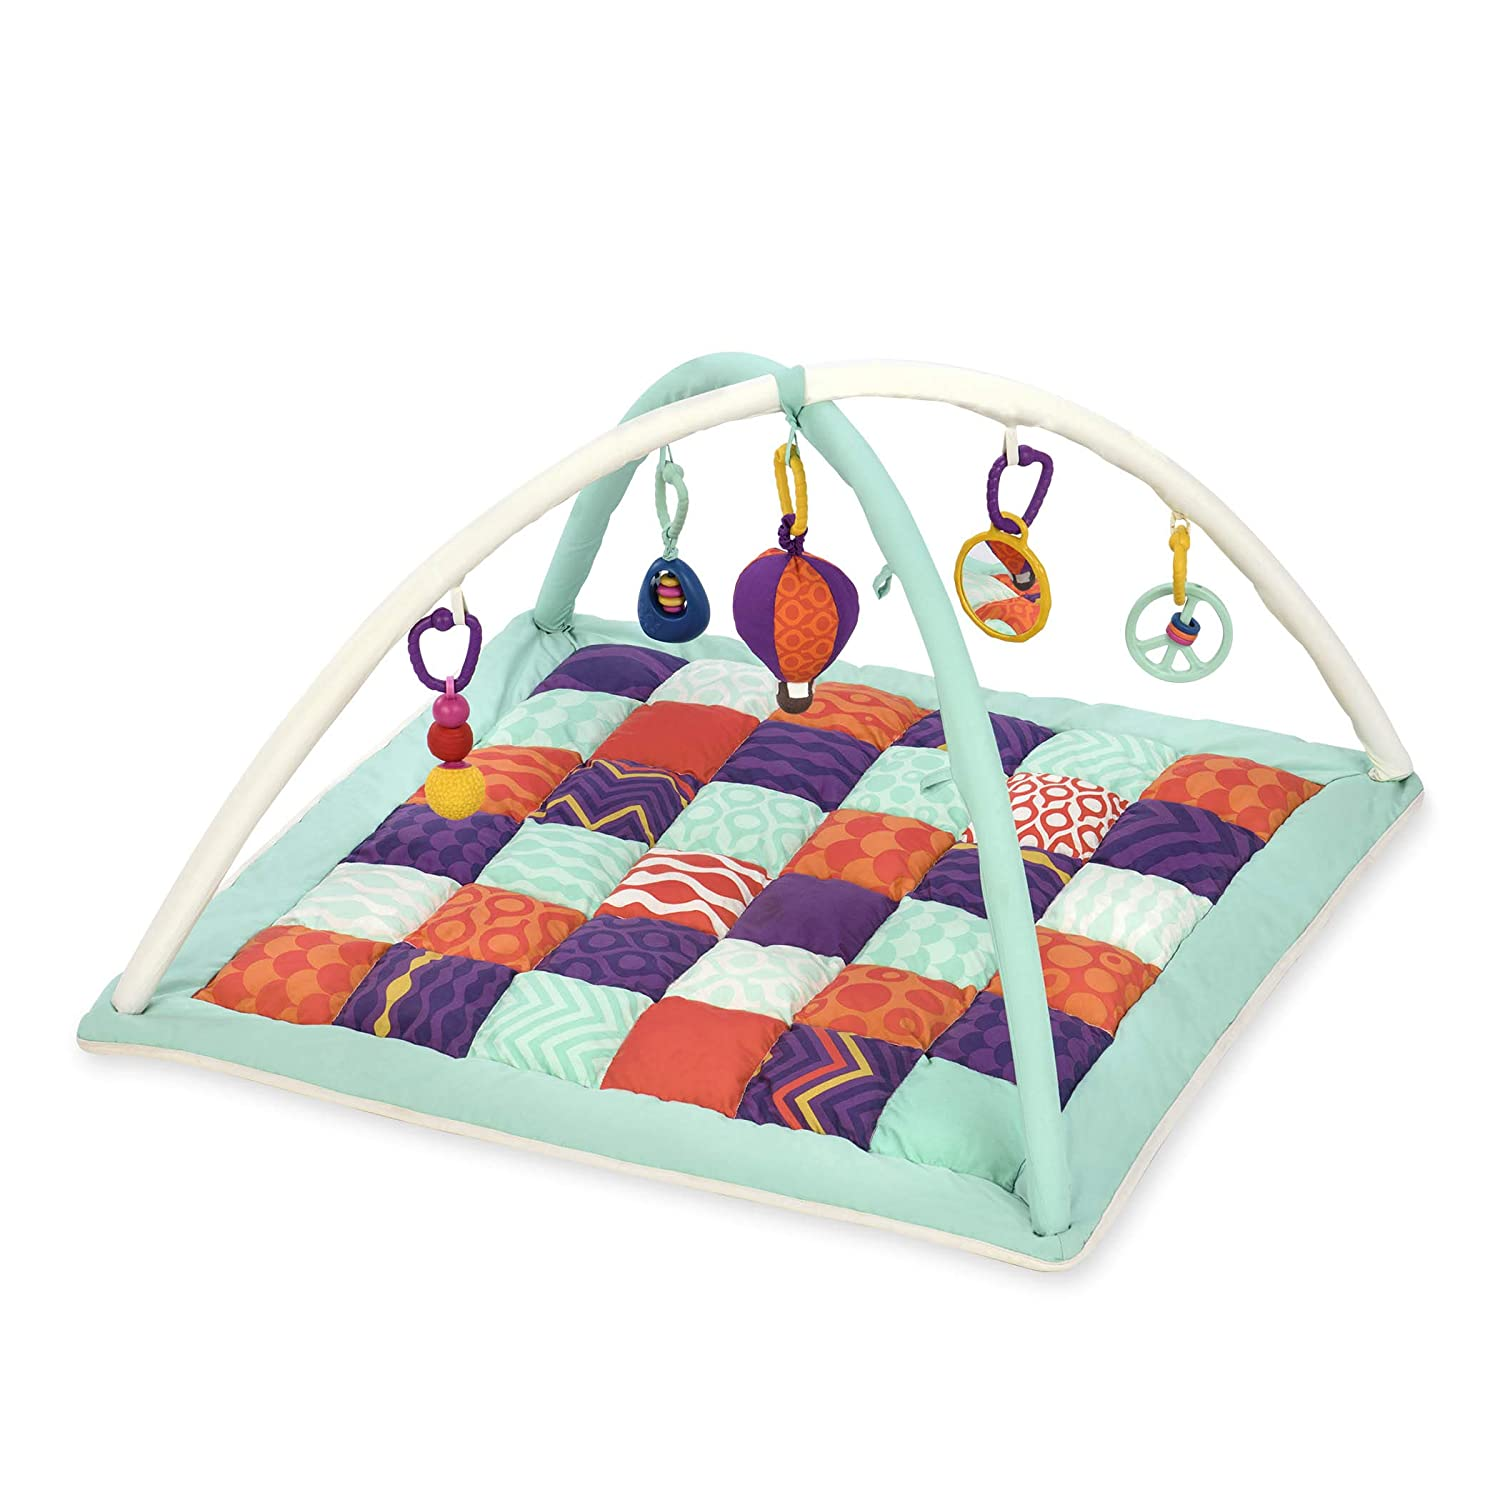 B toys by Battat – Wonders Above Activity Quilt – Baby Play Mat Gym with 5 Hanging Toys for Newborns